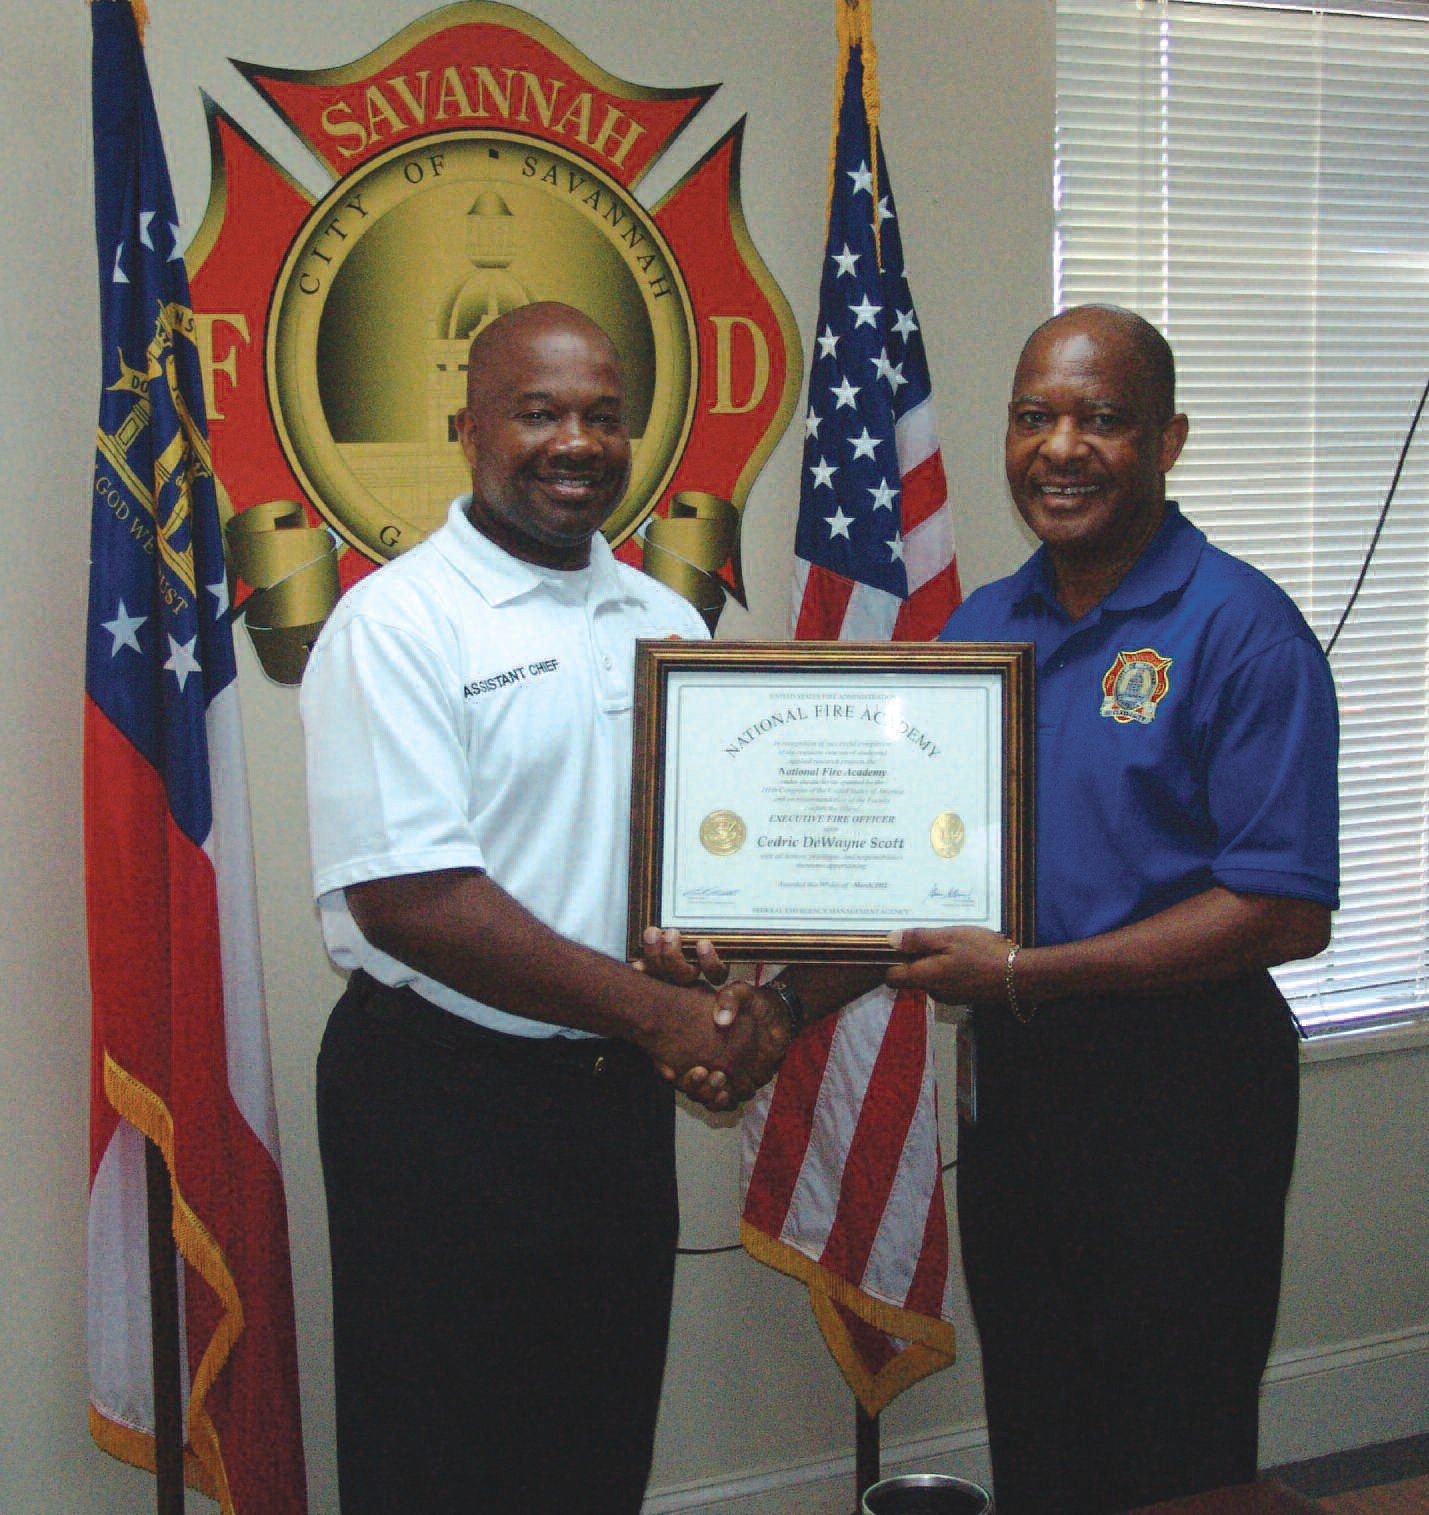 Savannah Fire Chief Charles G. Middleton (right) presents Assistant Fire Chief Cedric Scott with the Executive Fire Officer Program certificate